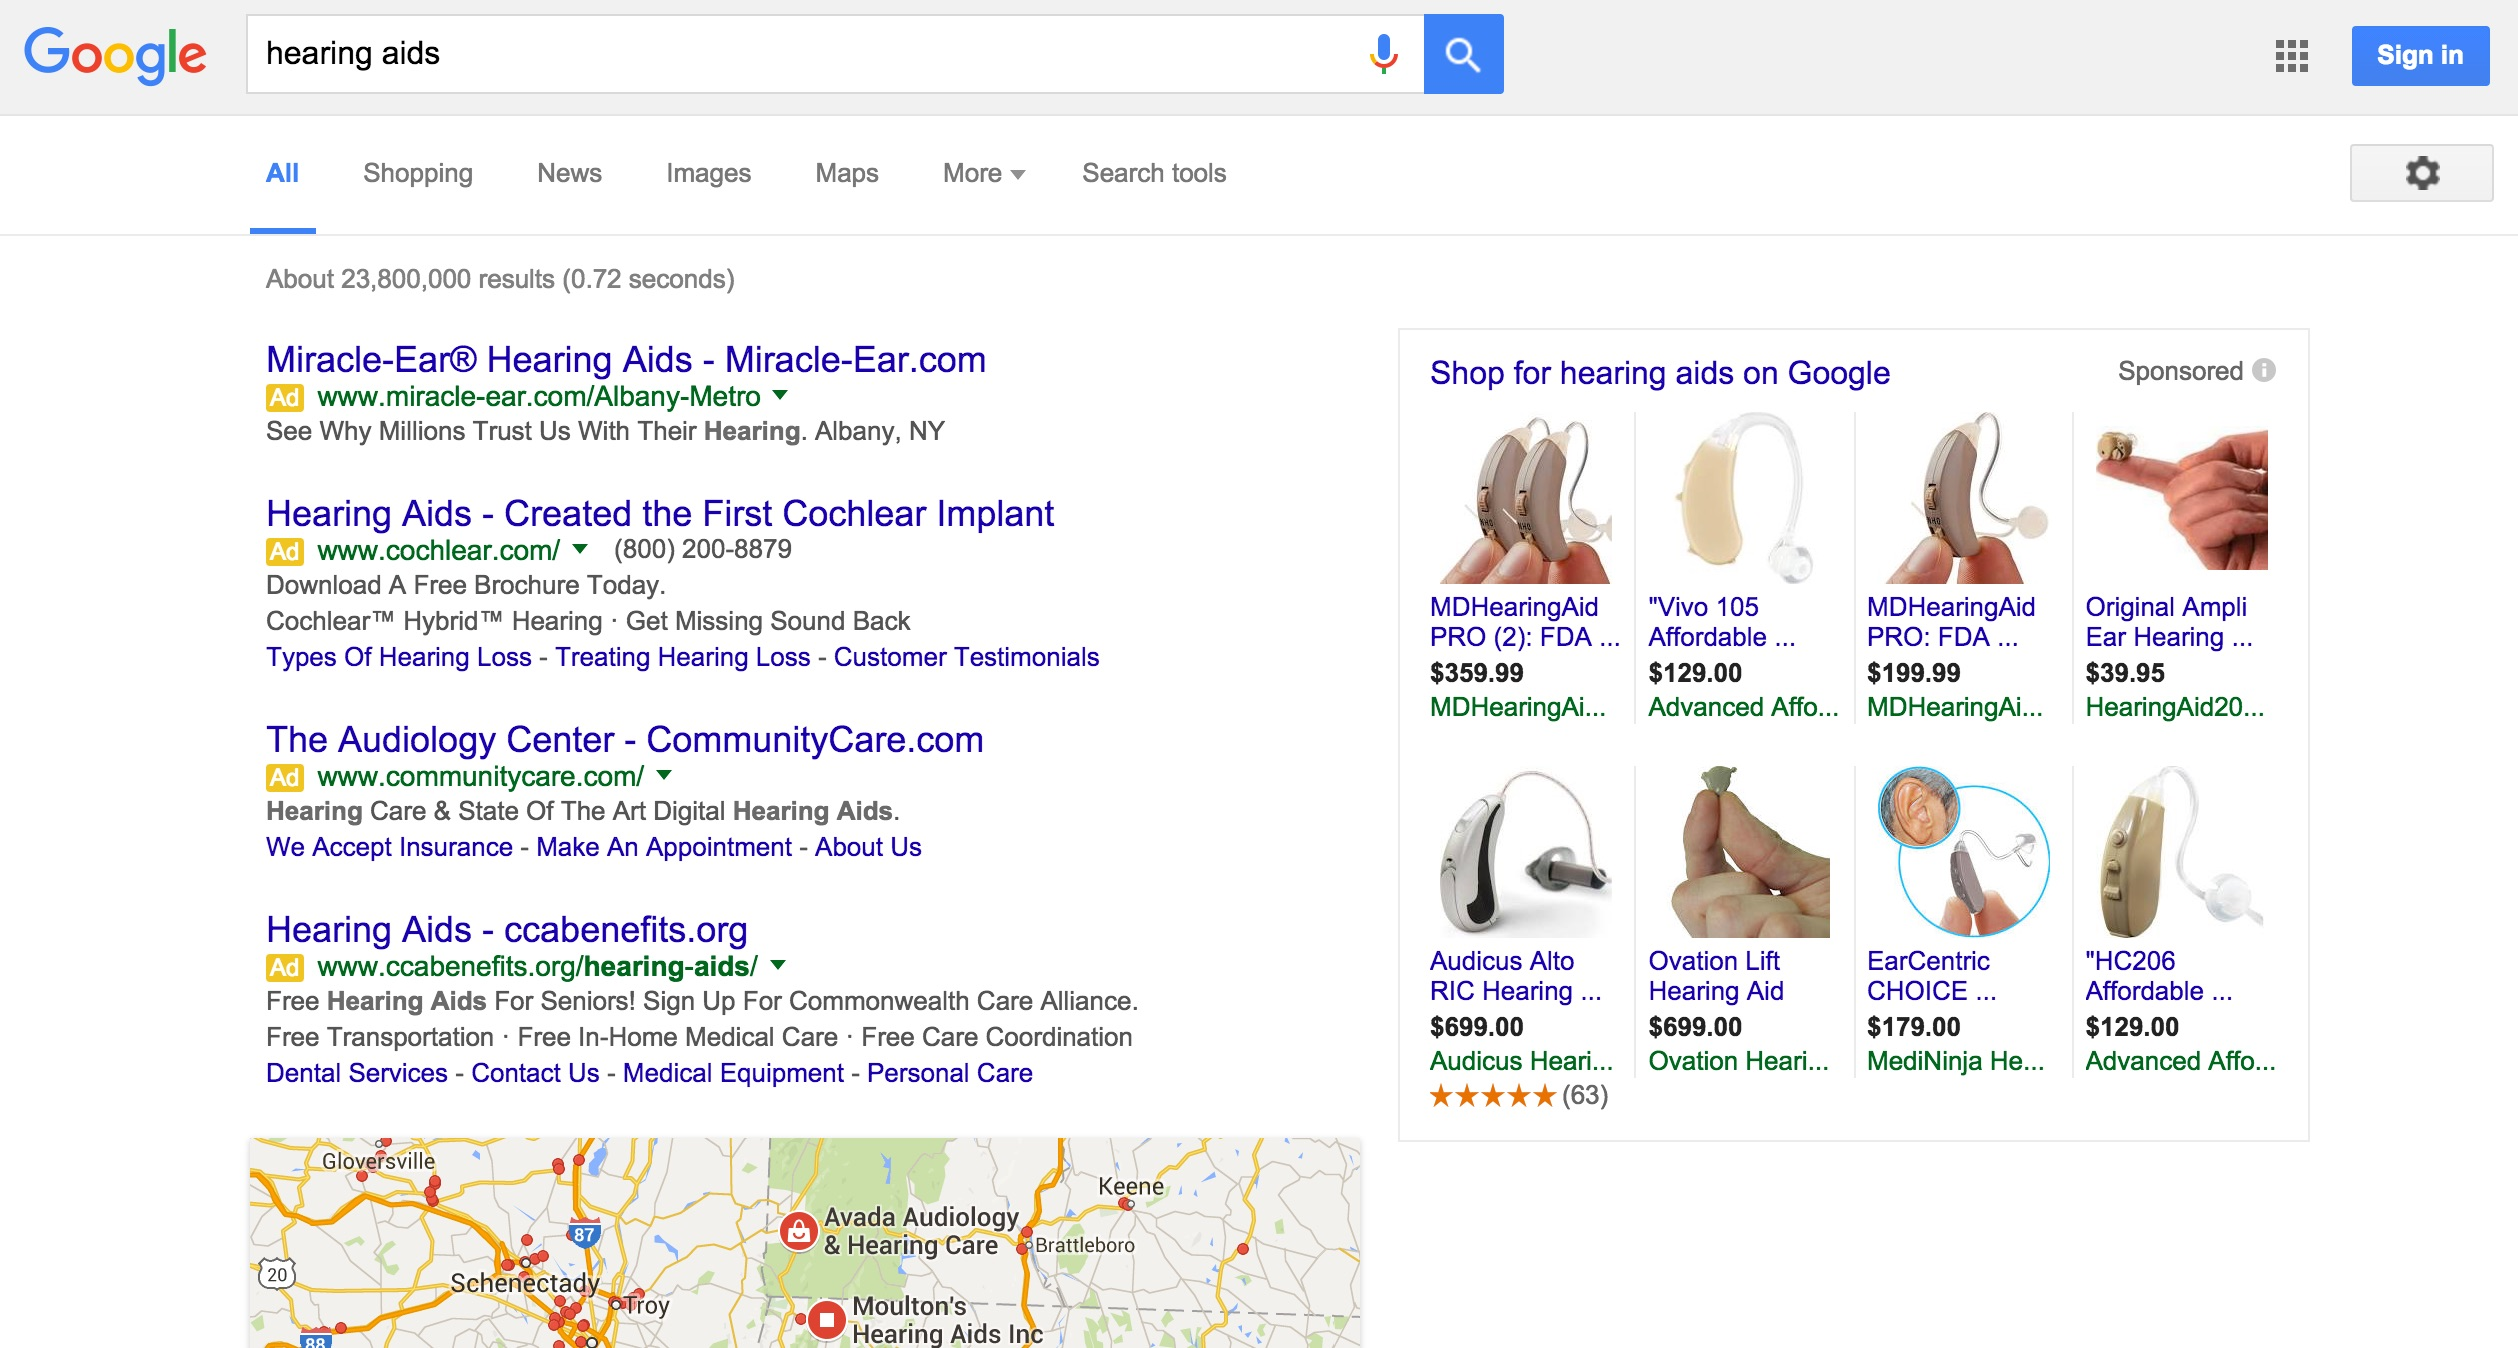 A Google search page for 'hearing aids'